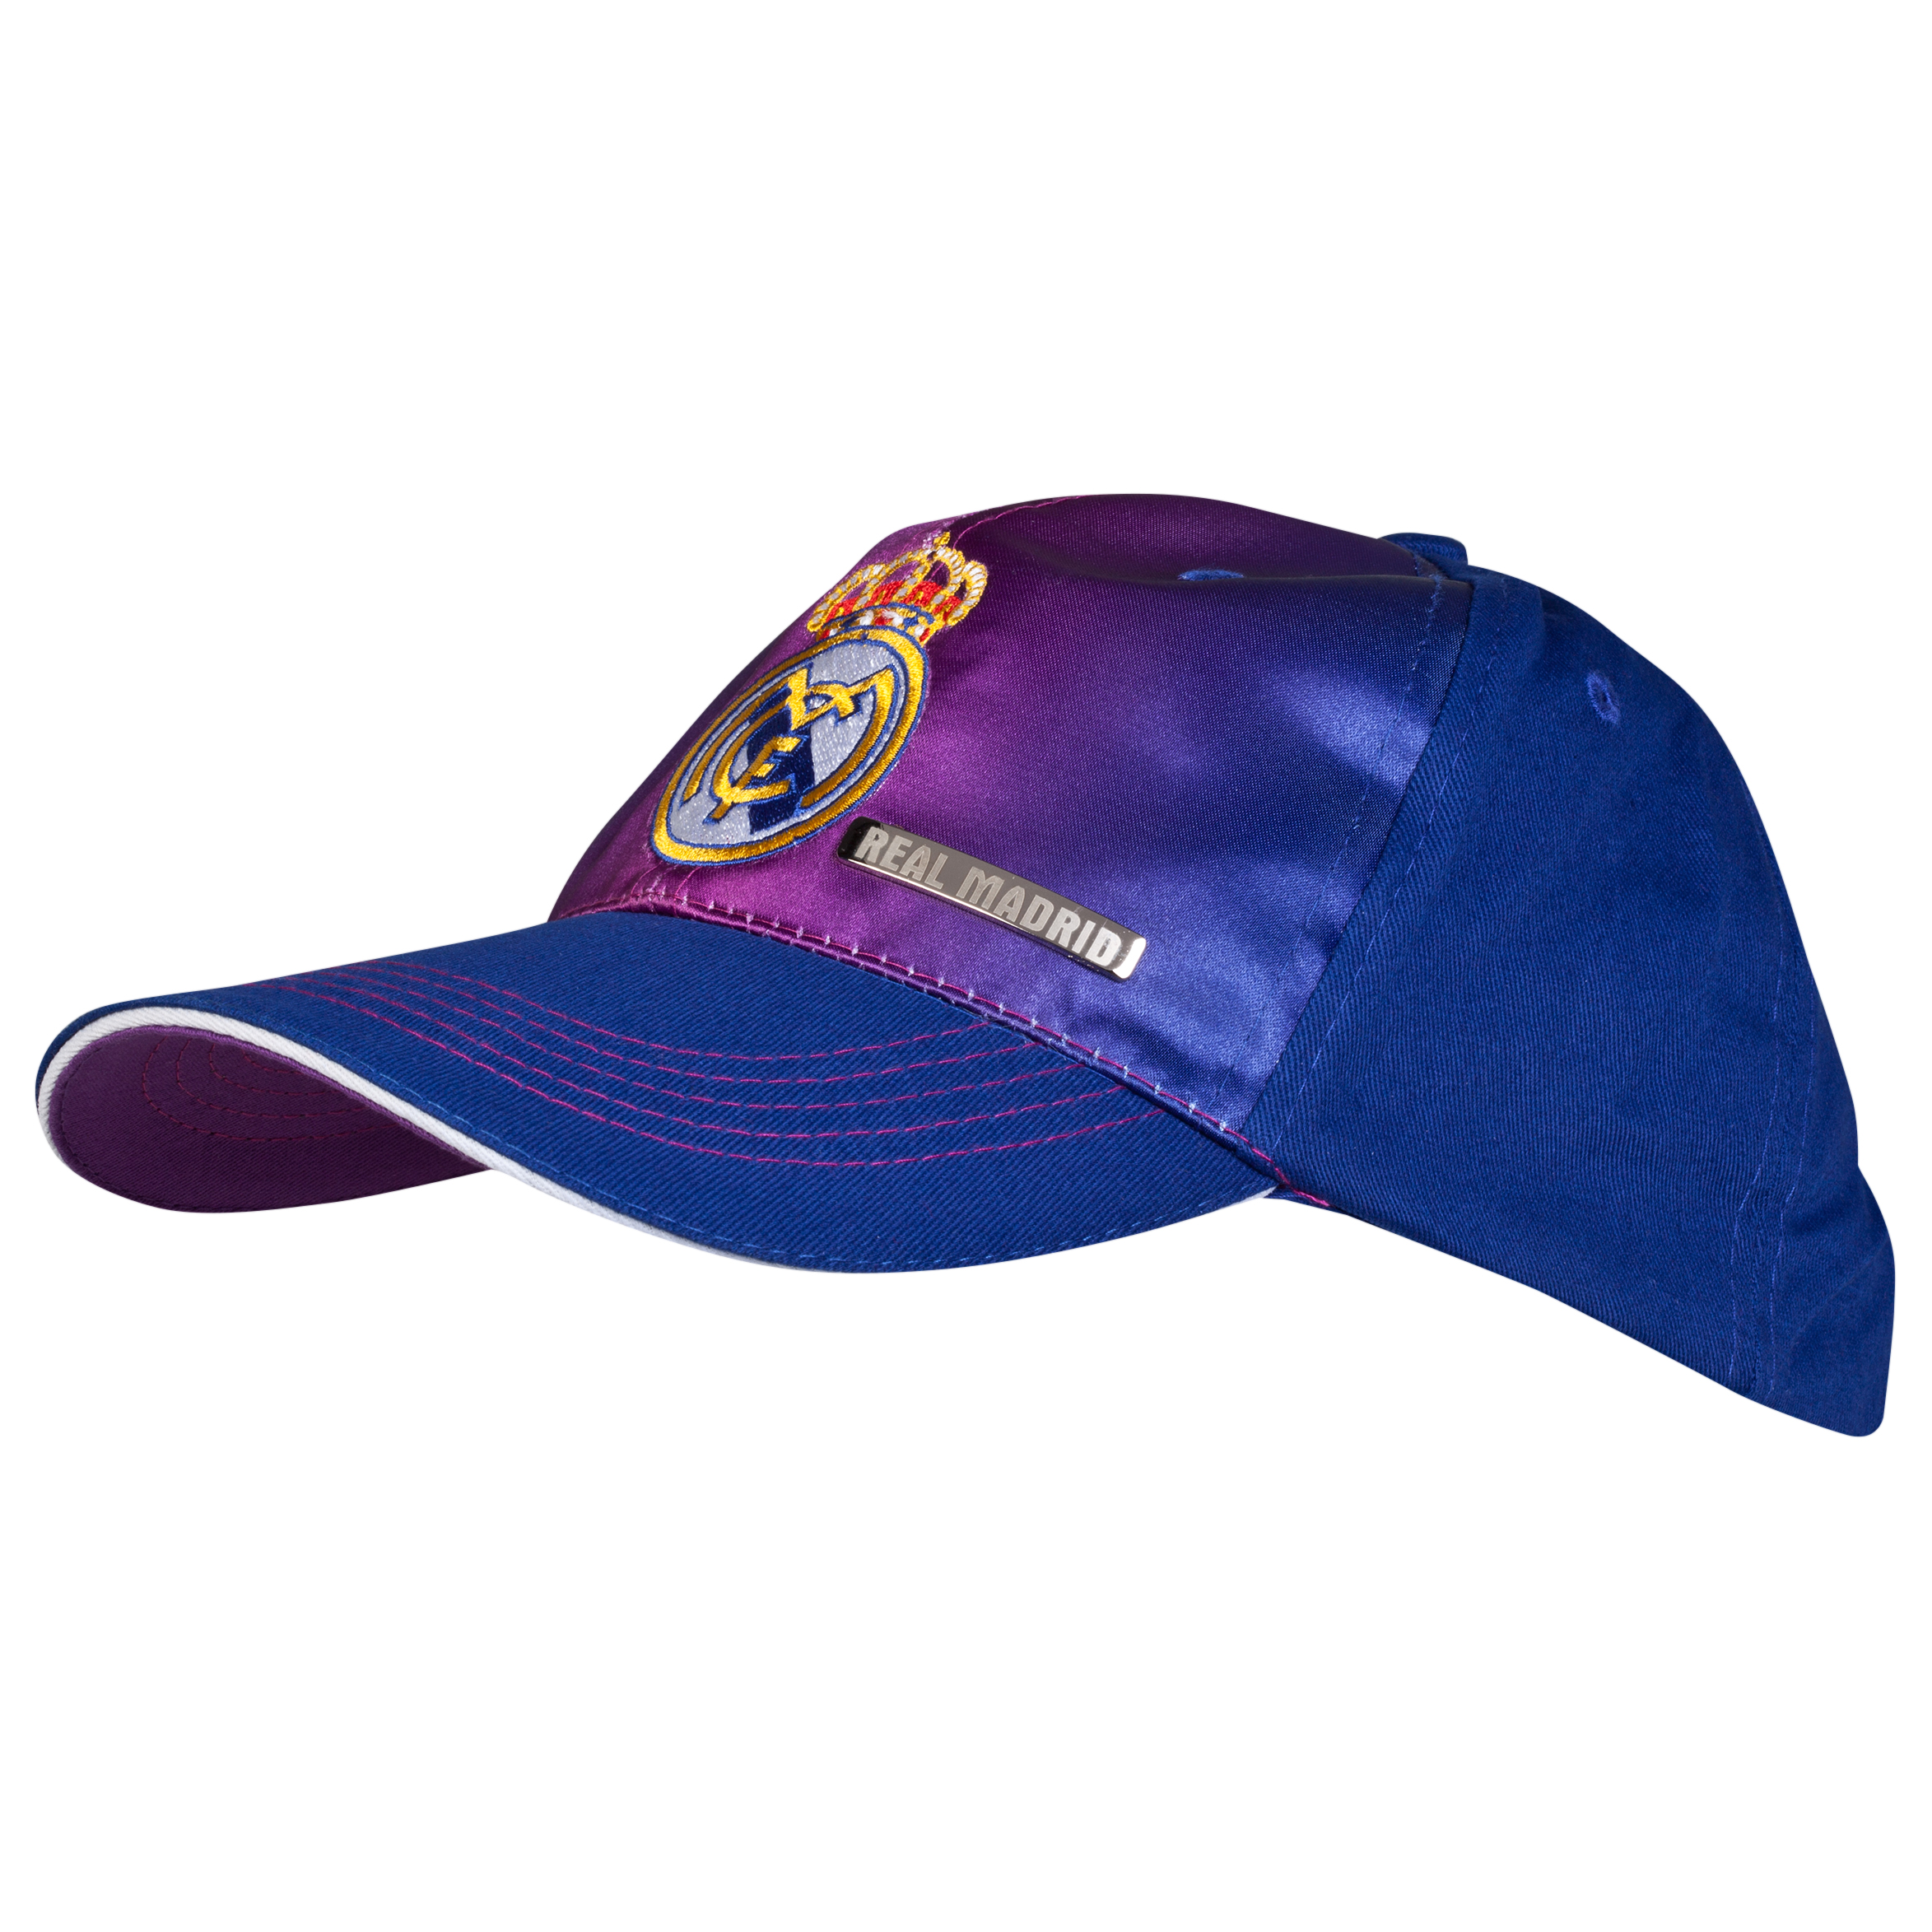 Real Madrid Crest Cap - Purple - Adult